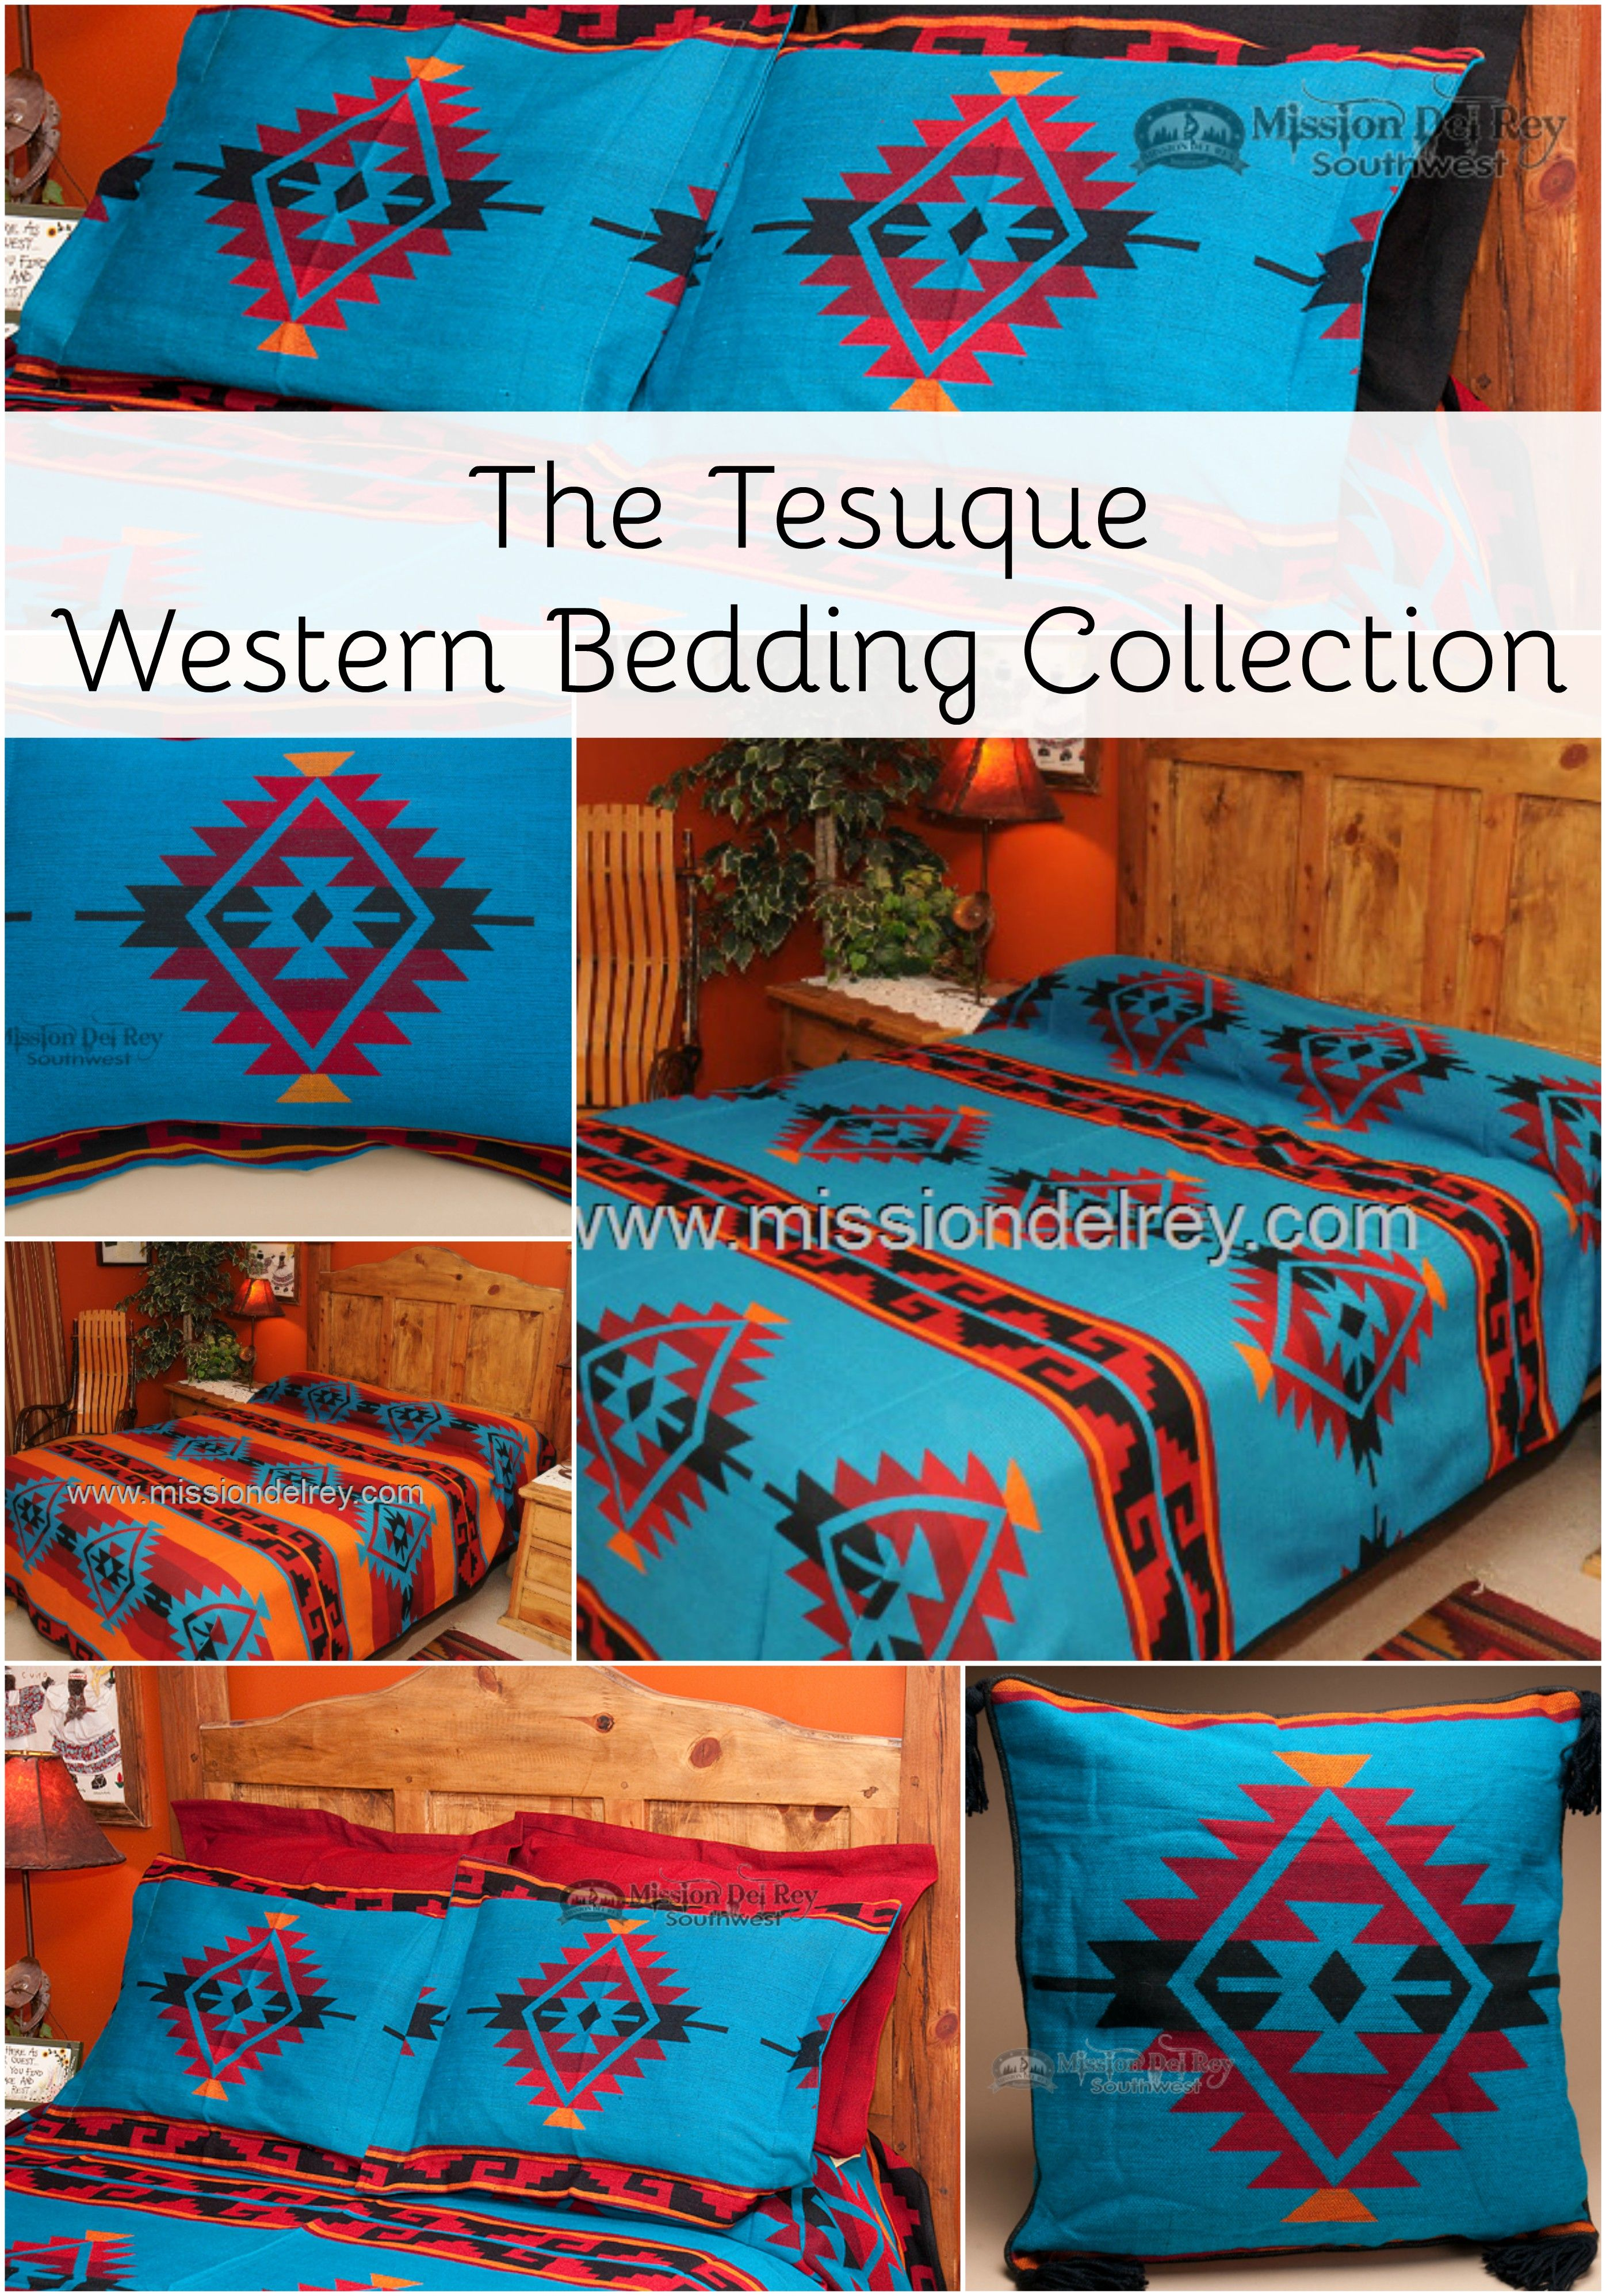 Queen Size 88 Wide 96 Long Reversible Lightweight Soft Acrylic Woven Pattern This Is A Beautiful Southwestern Bedspread